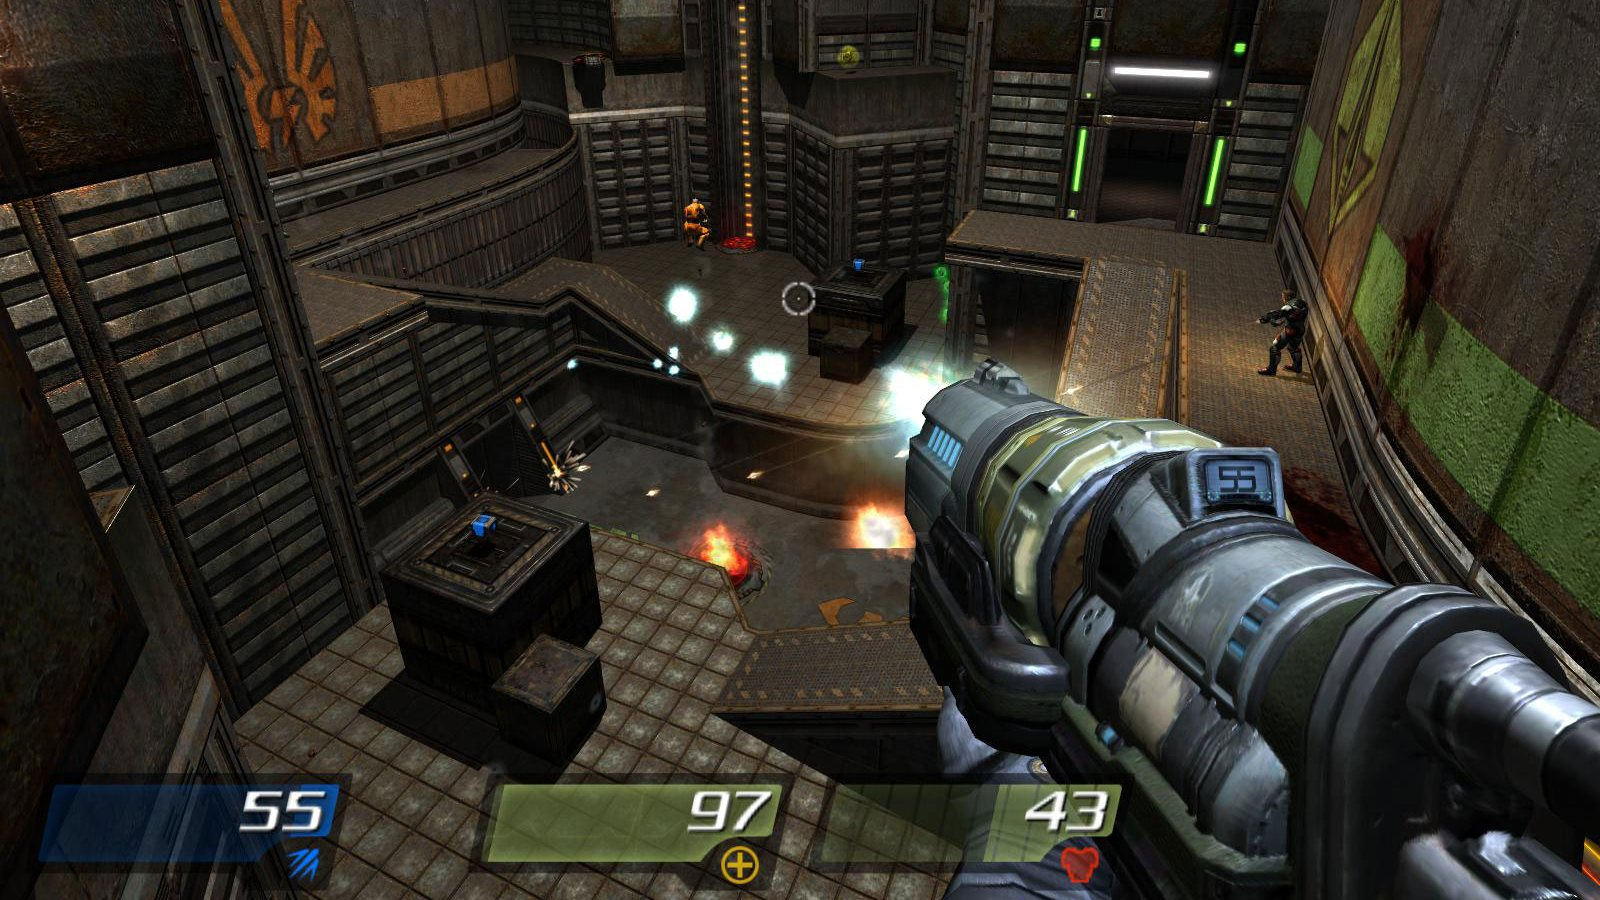 Quake 4 screenshot